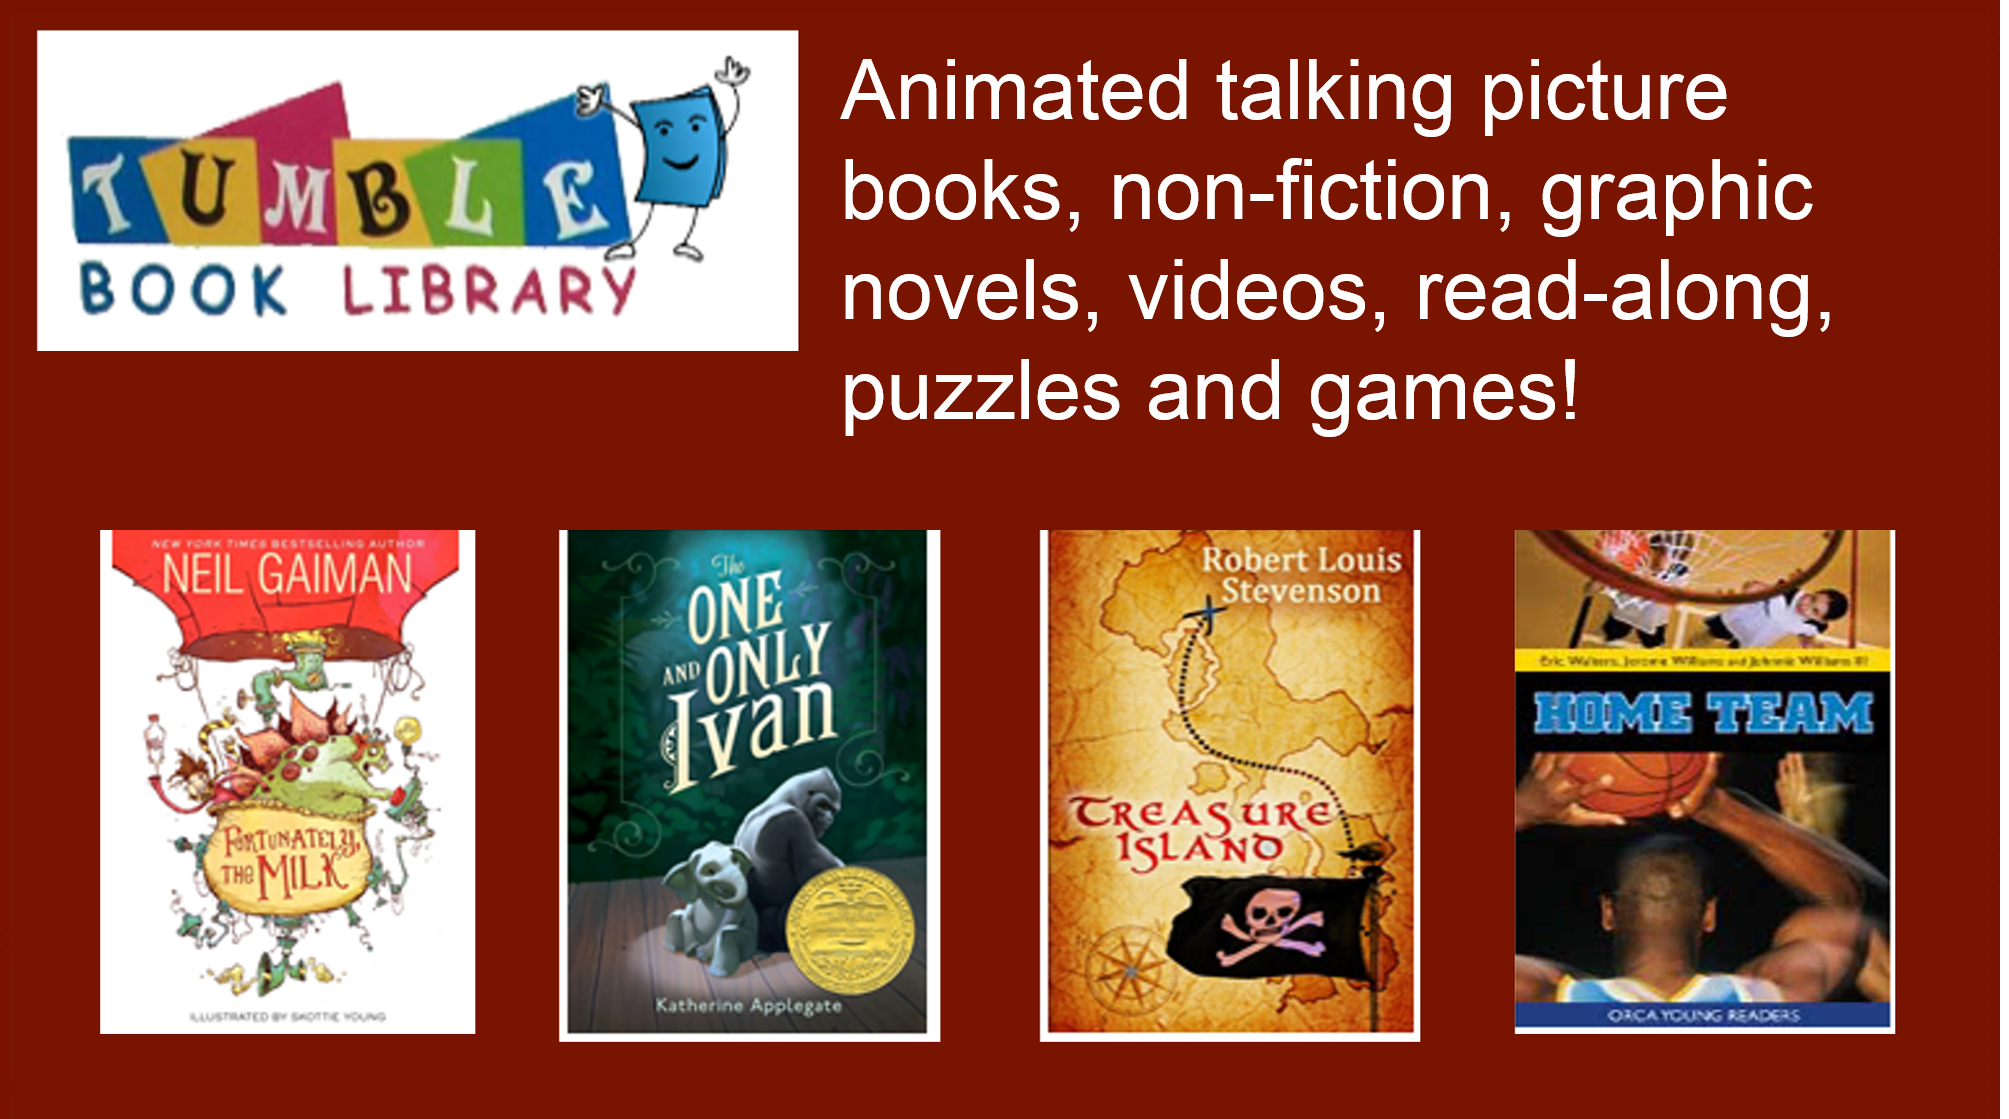 Tumble Book Library: Animated talking picture books, non-fiction, graphic novels, videos, read-along, puzzles and games!